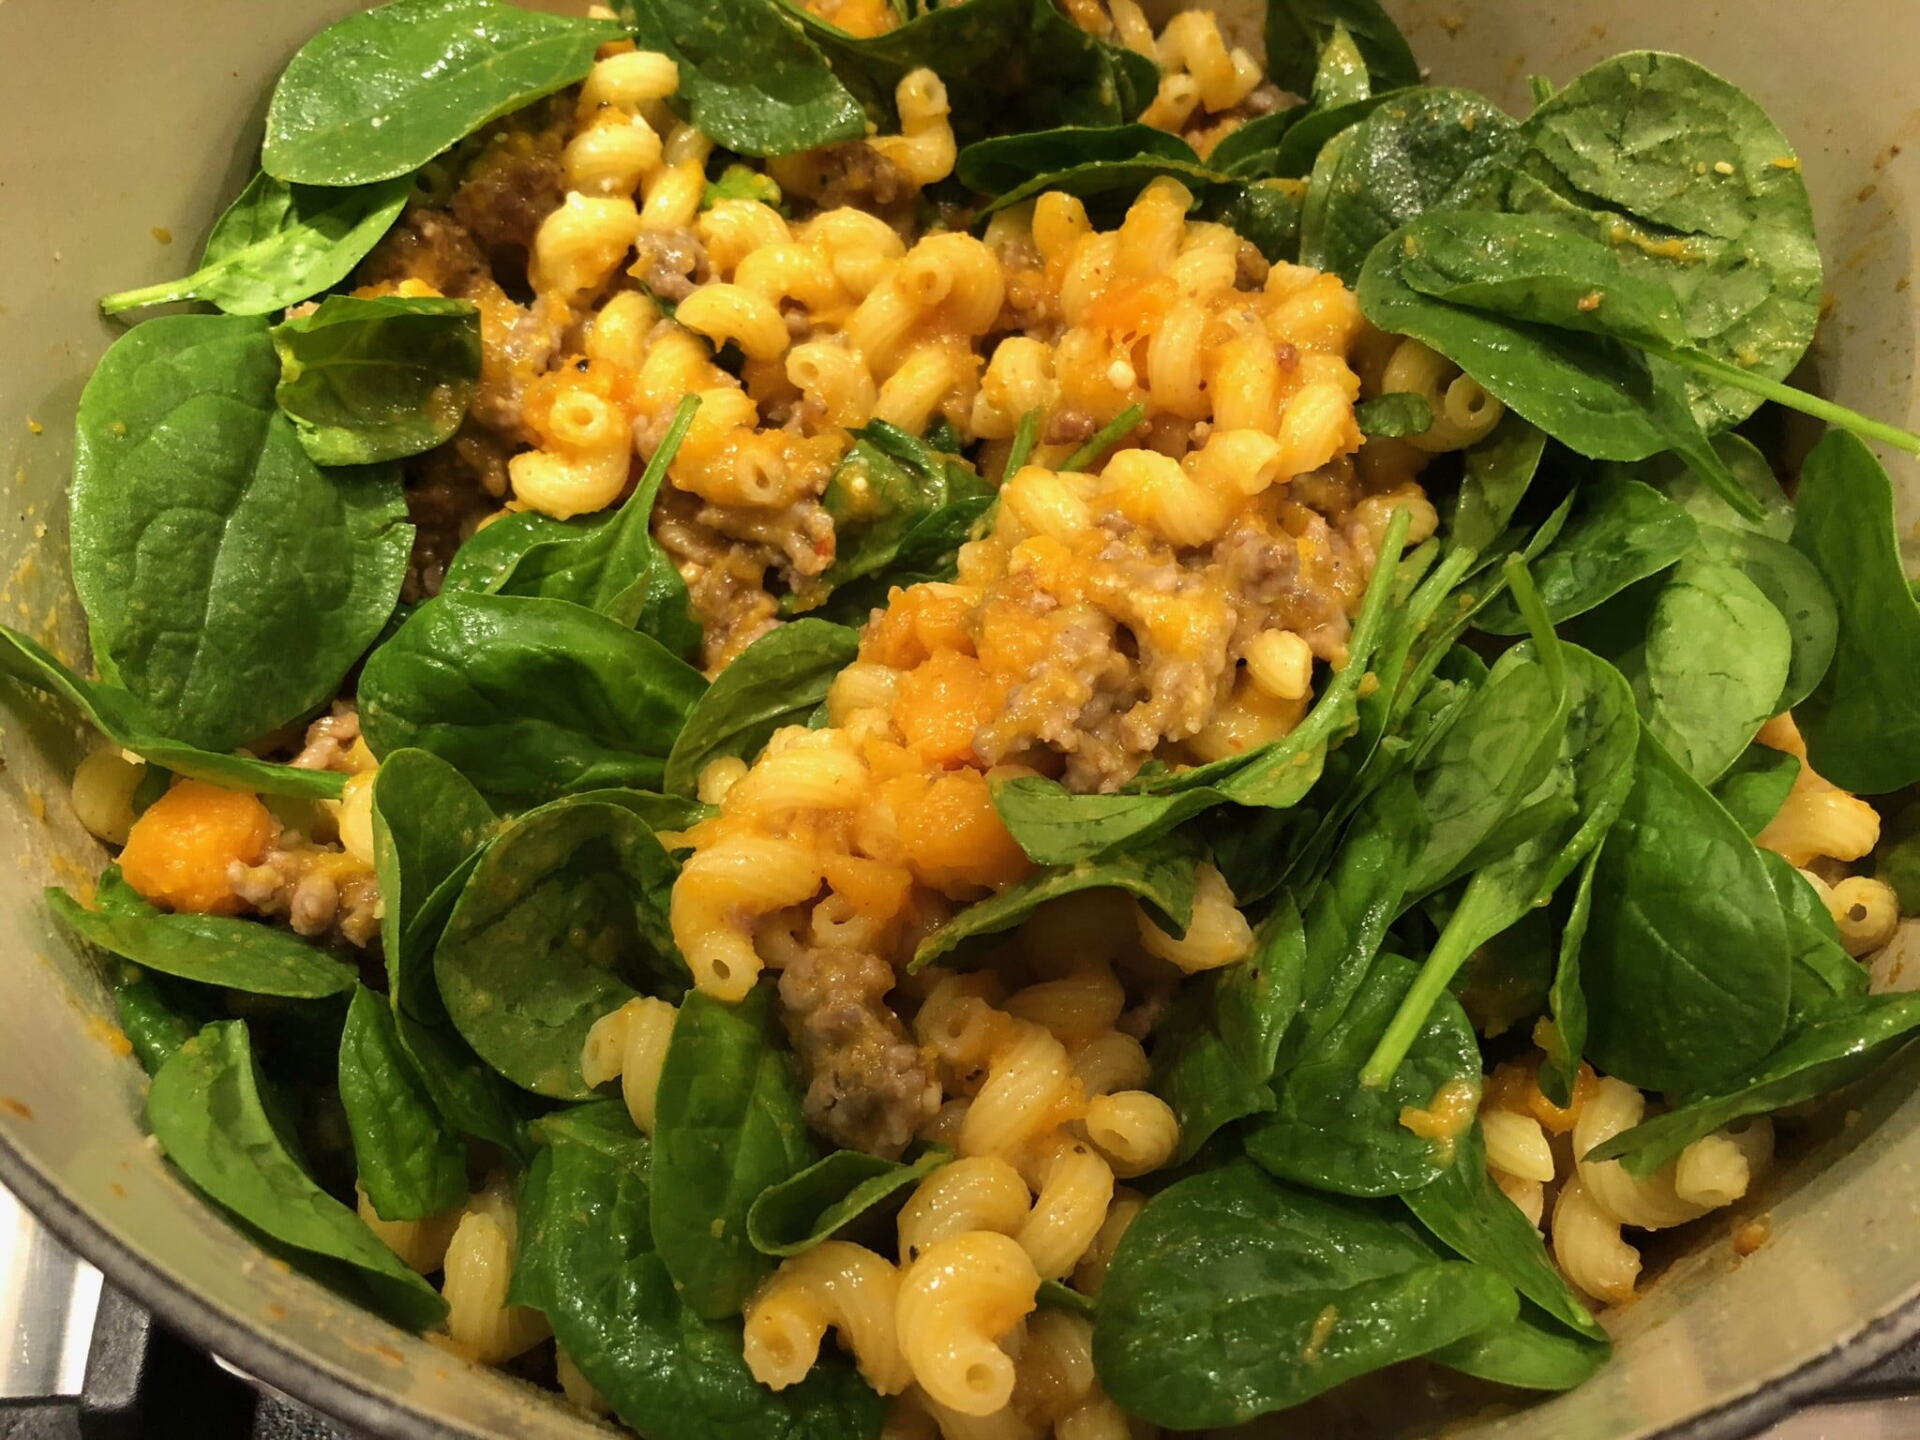 Baked Pasta spinach